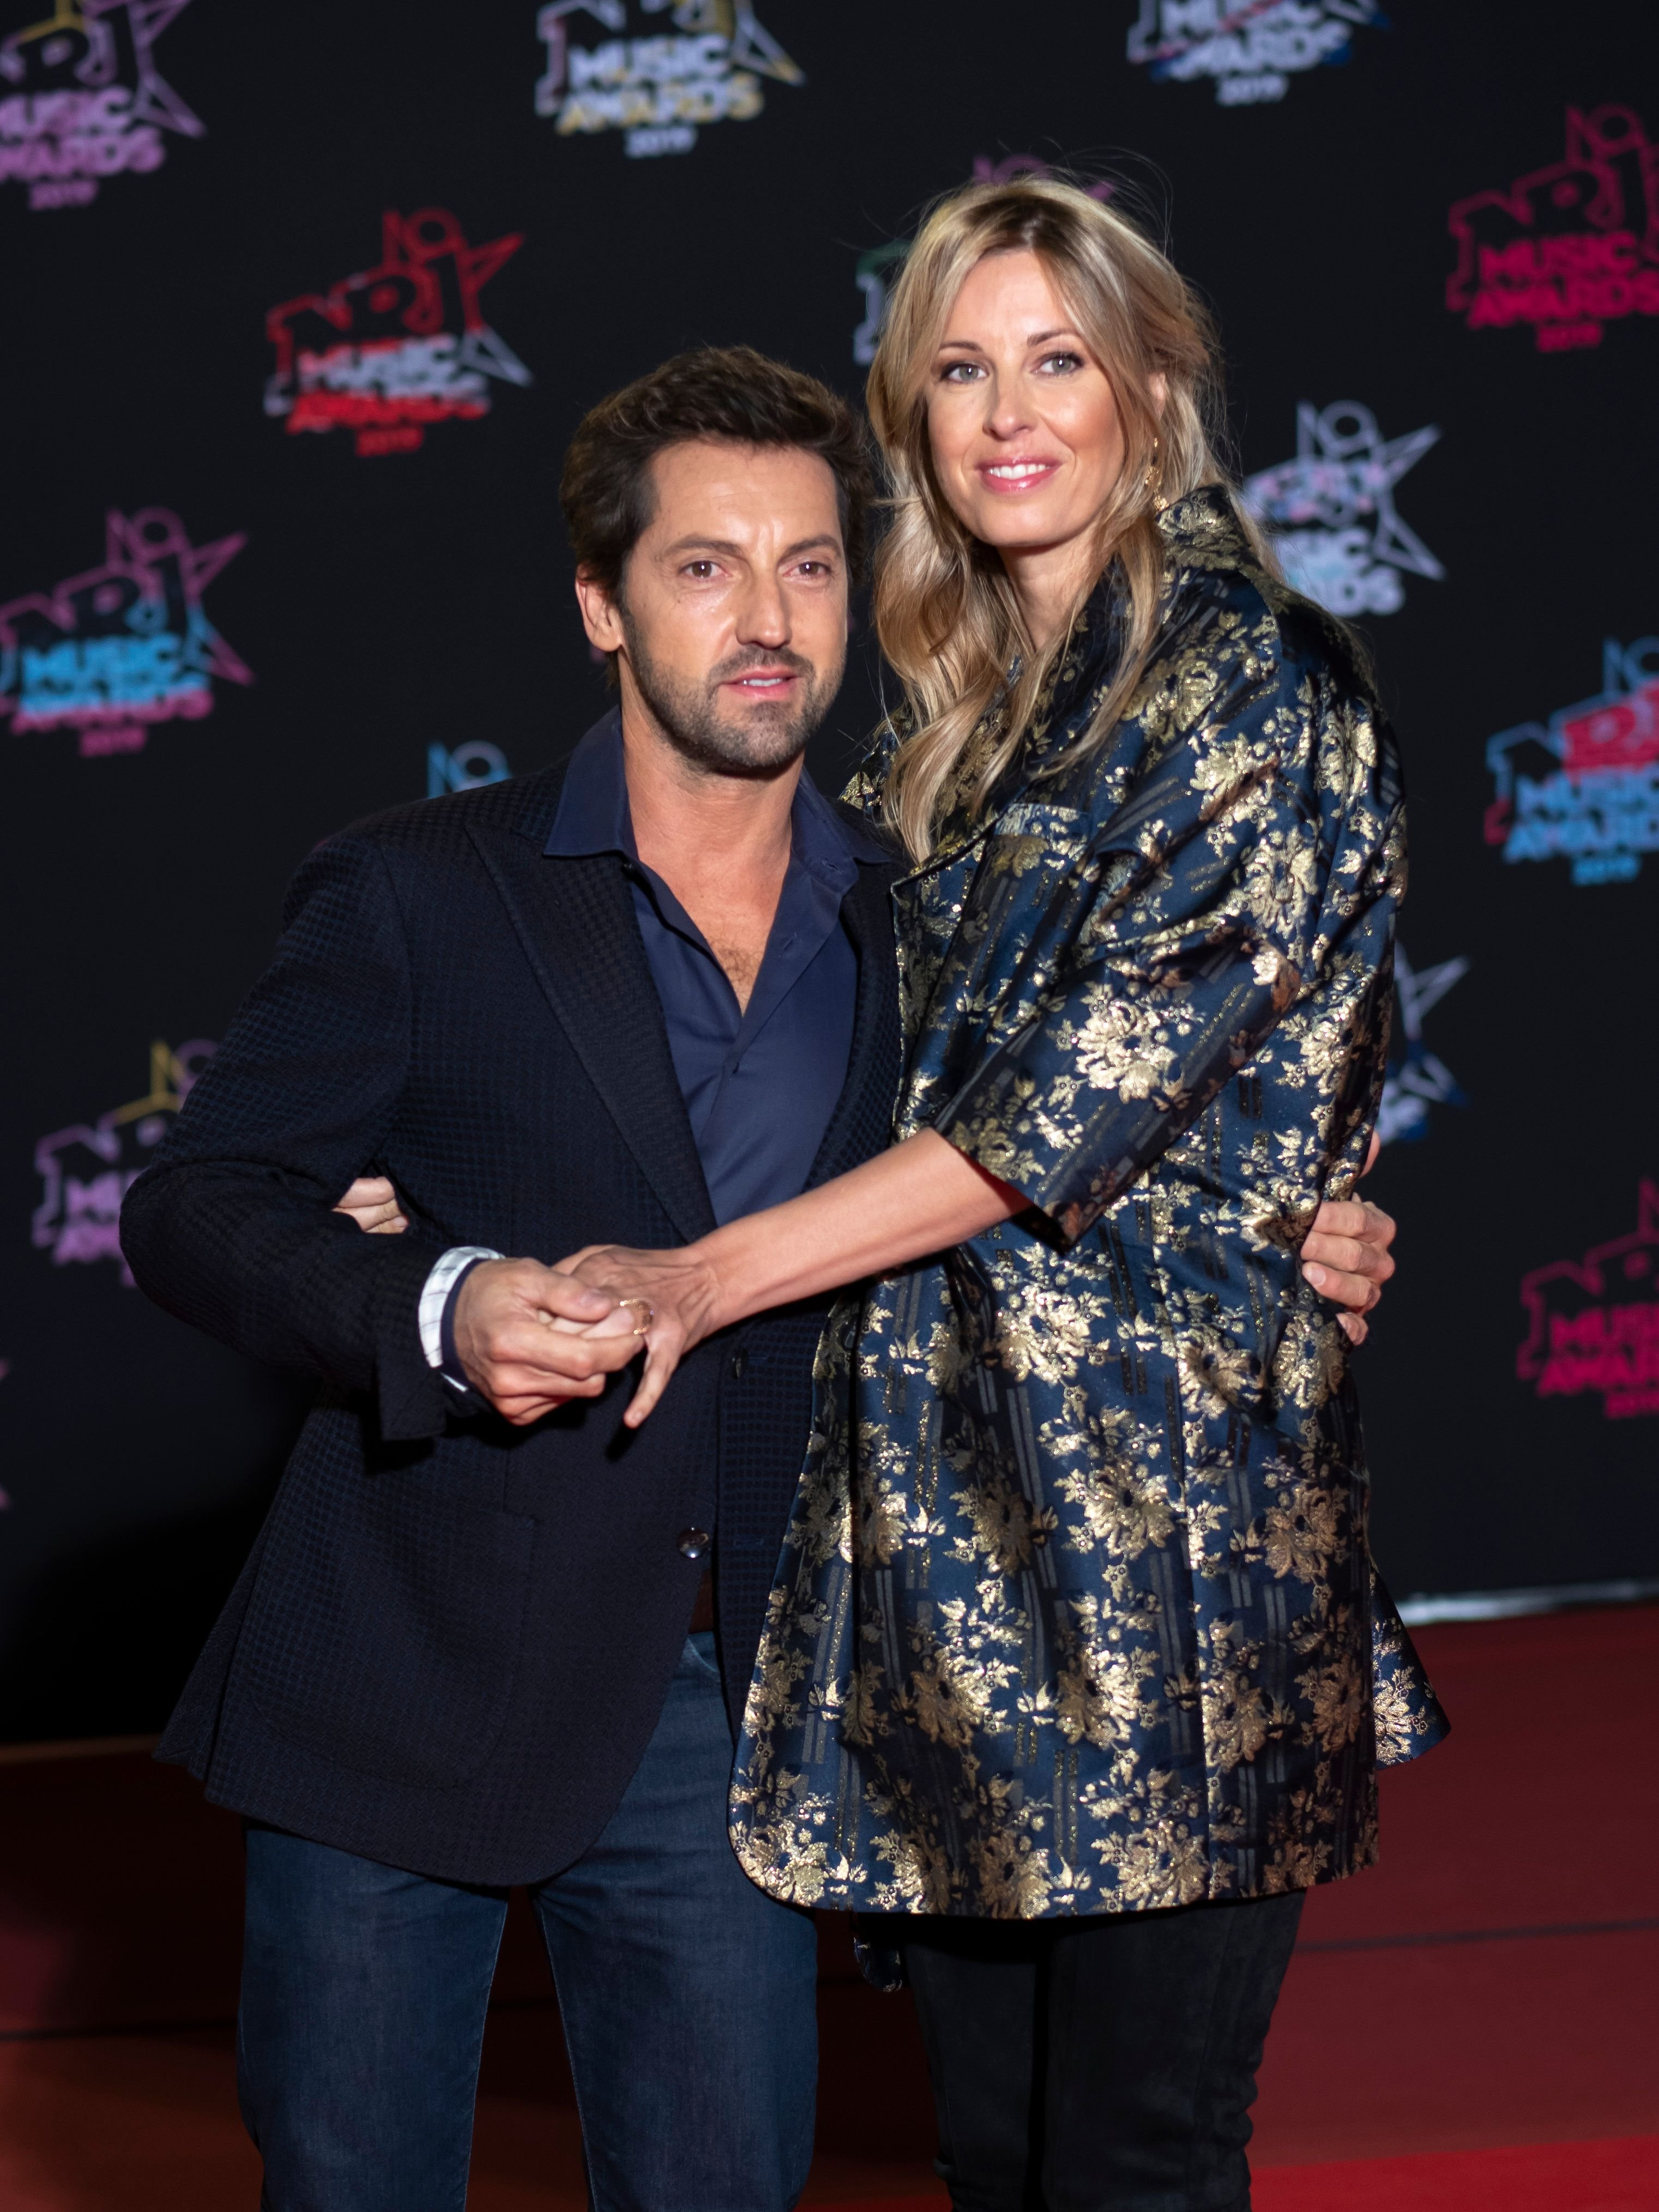 Frederic Diefenthal et Gwendoline Hamon assiste à la 21e NRJ Music Awards au Palais des Festivals le 09 novembre 2019 à Cannes, France.  | Photo : Getty Images